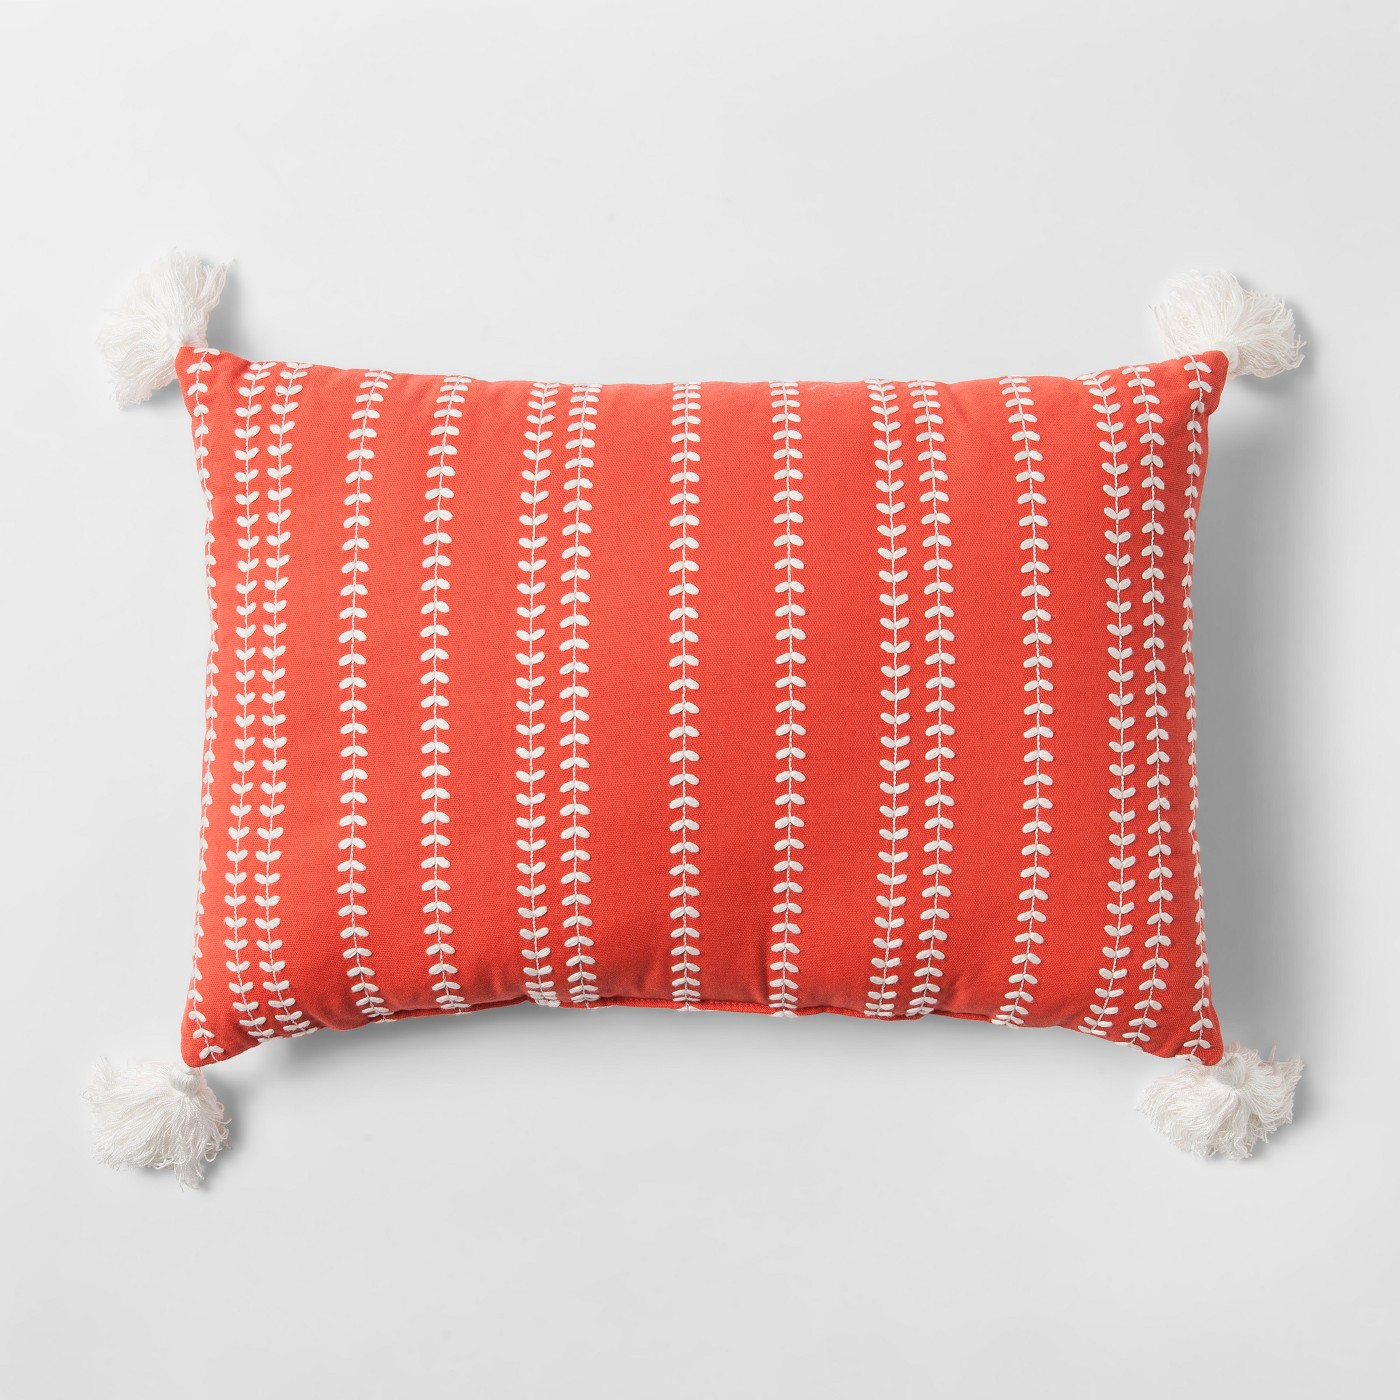 Pillow Style Guide How To Choose Arrange Pillows Like A Pro Whitney Homes